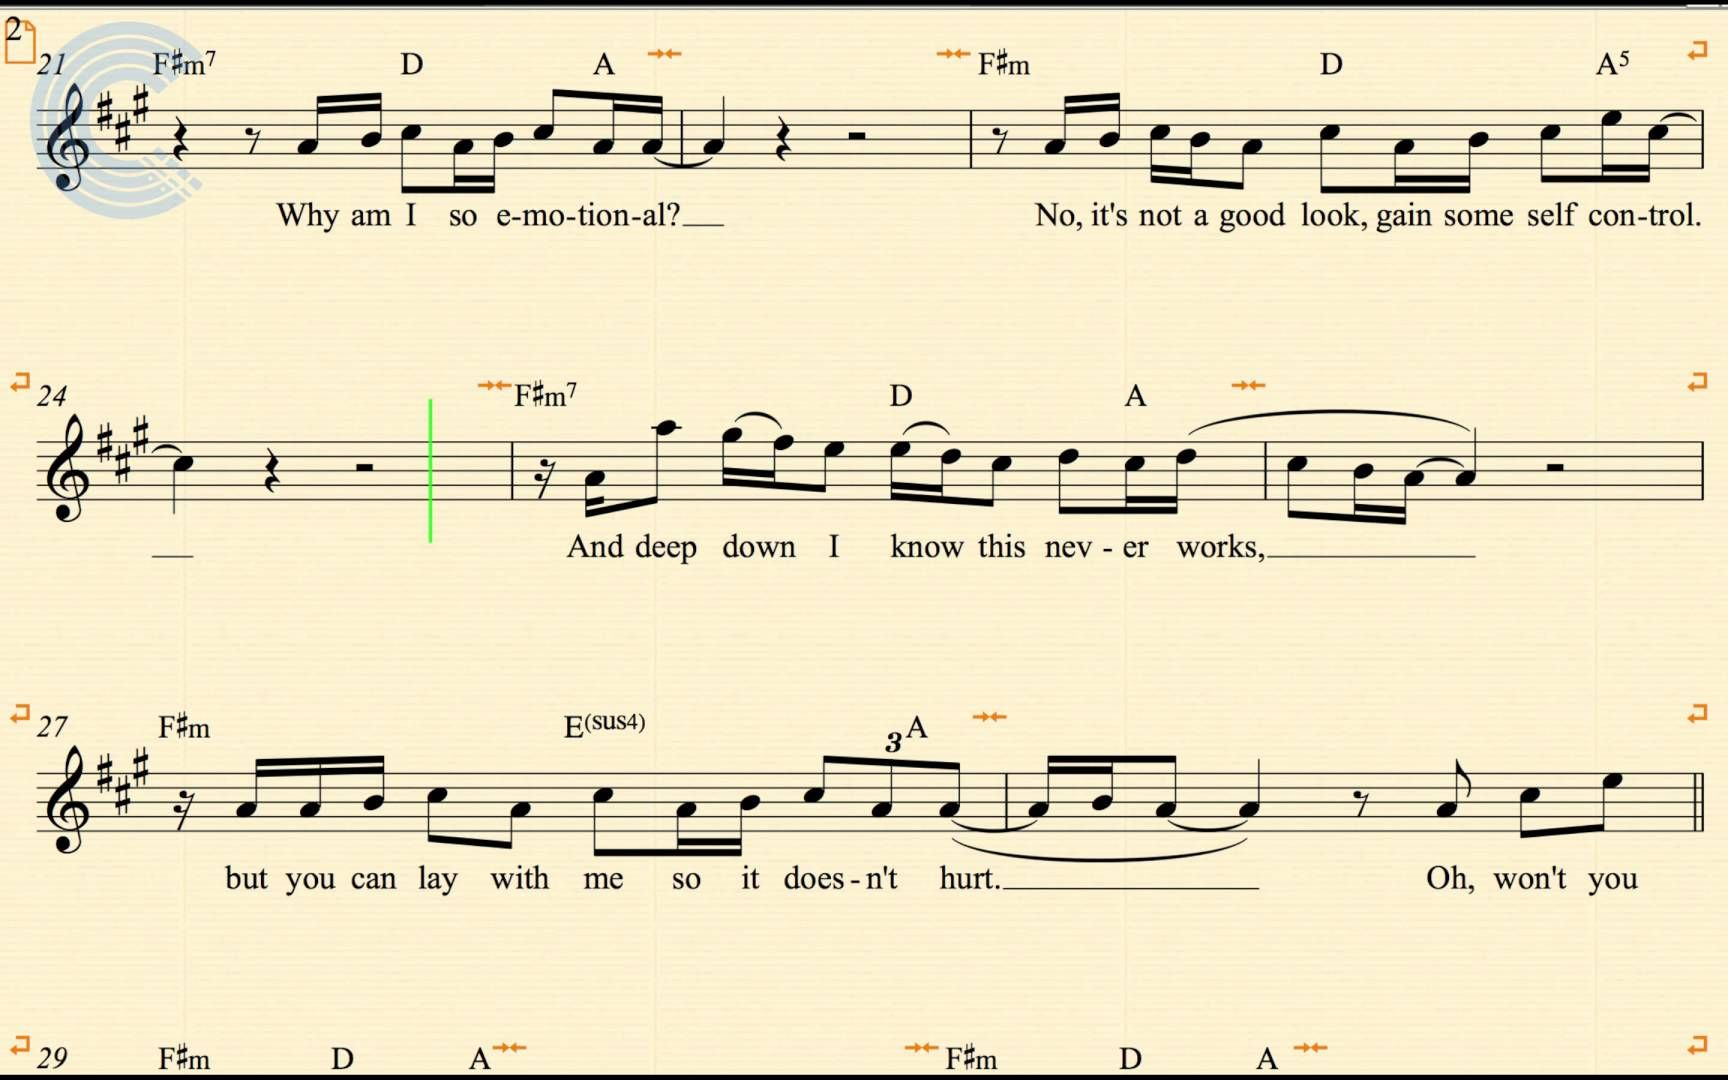 Alto Sax Stay With Me Sam Smith Sheet Music Chords